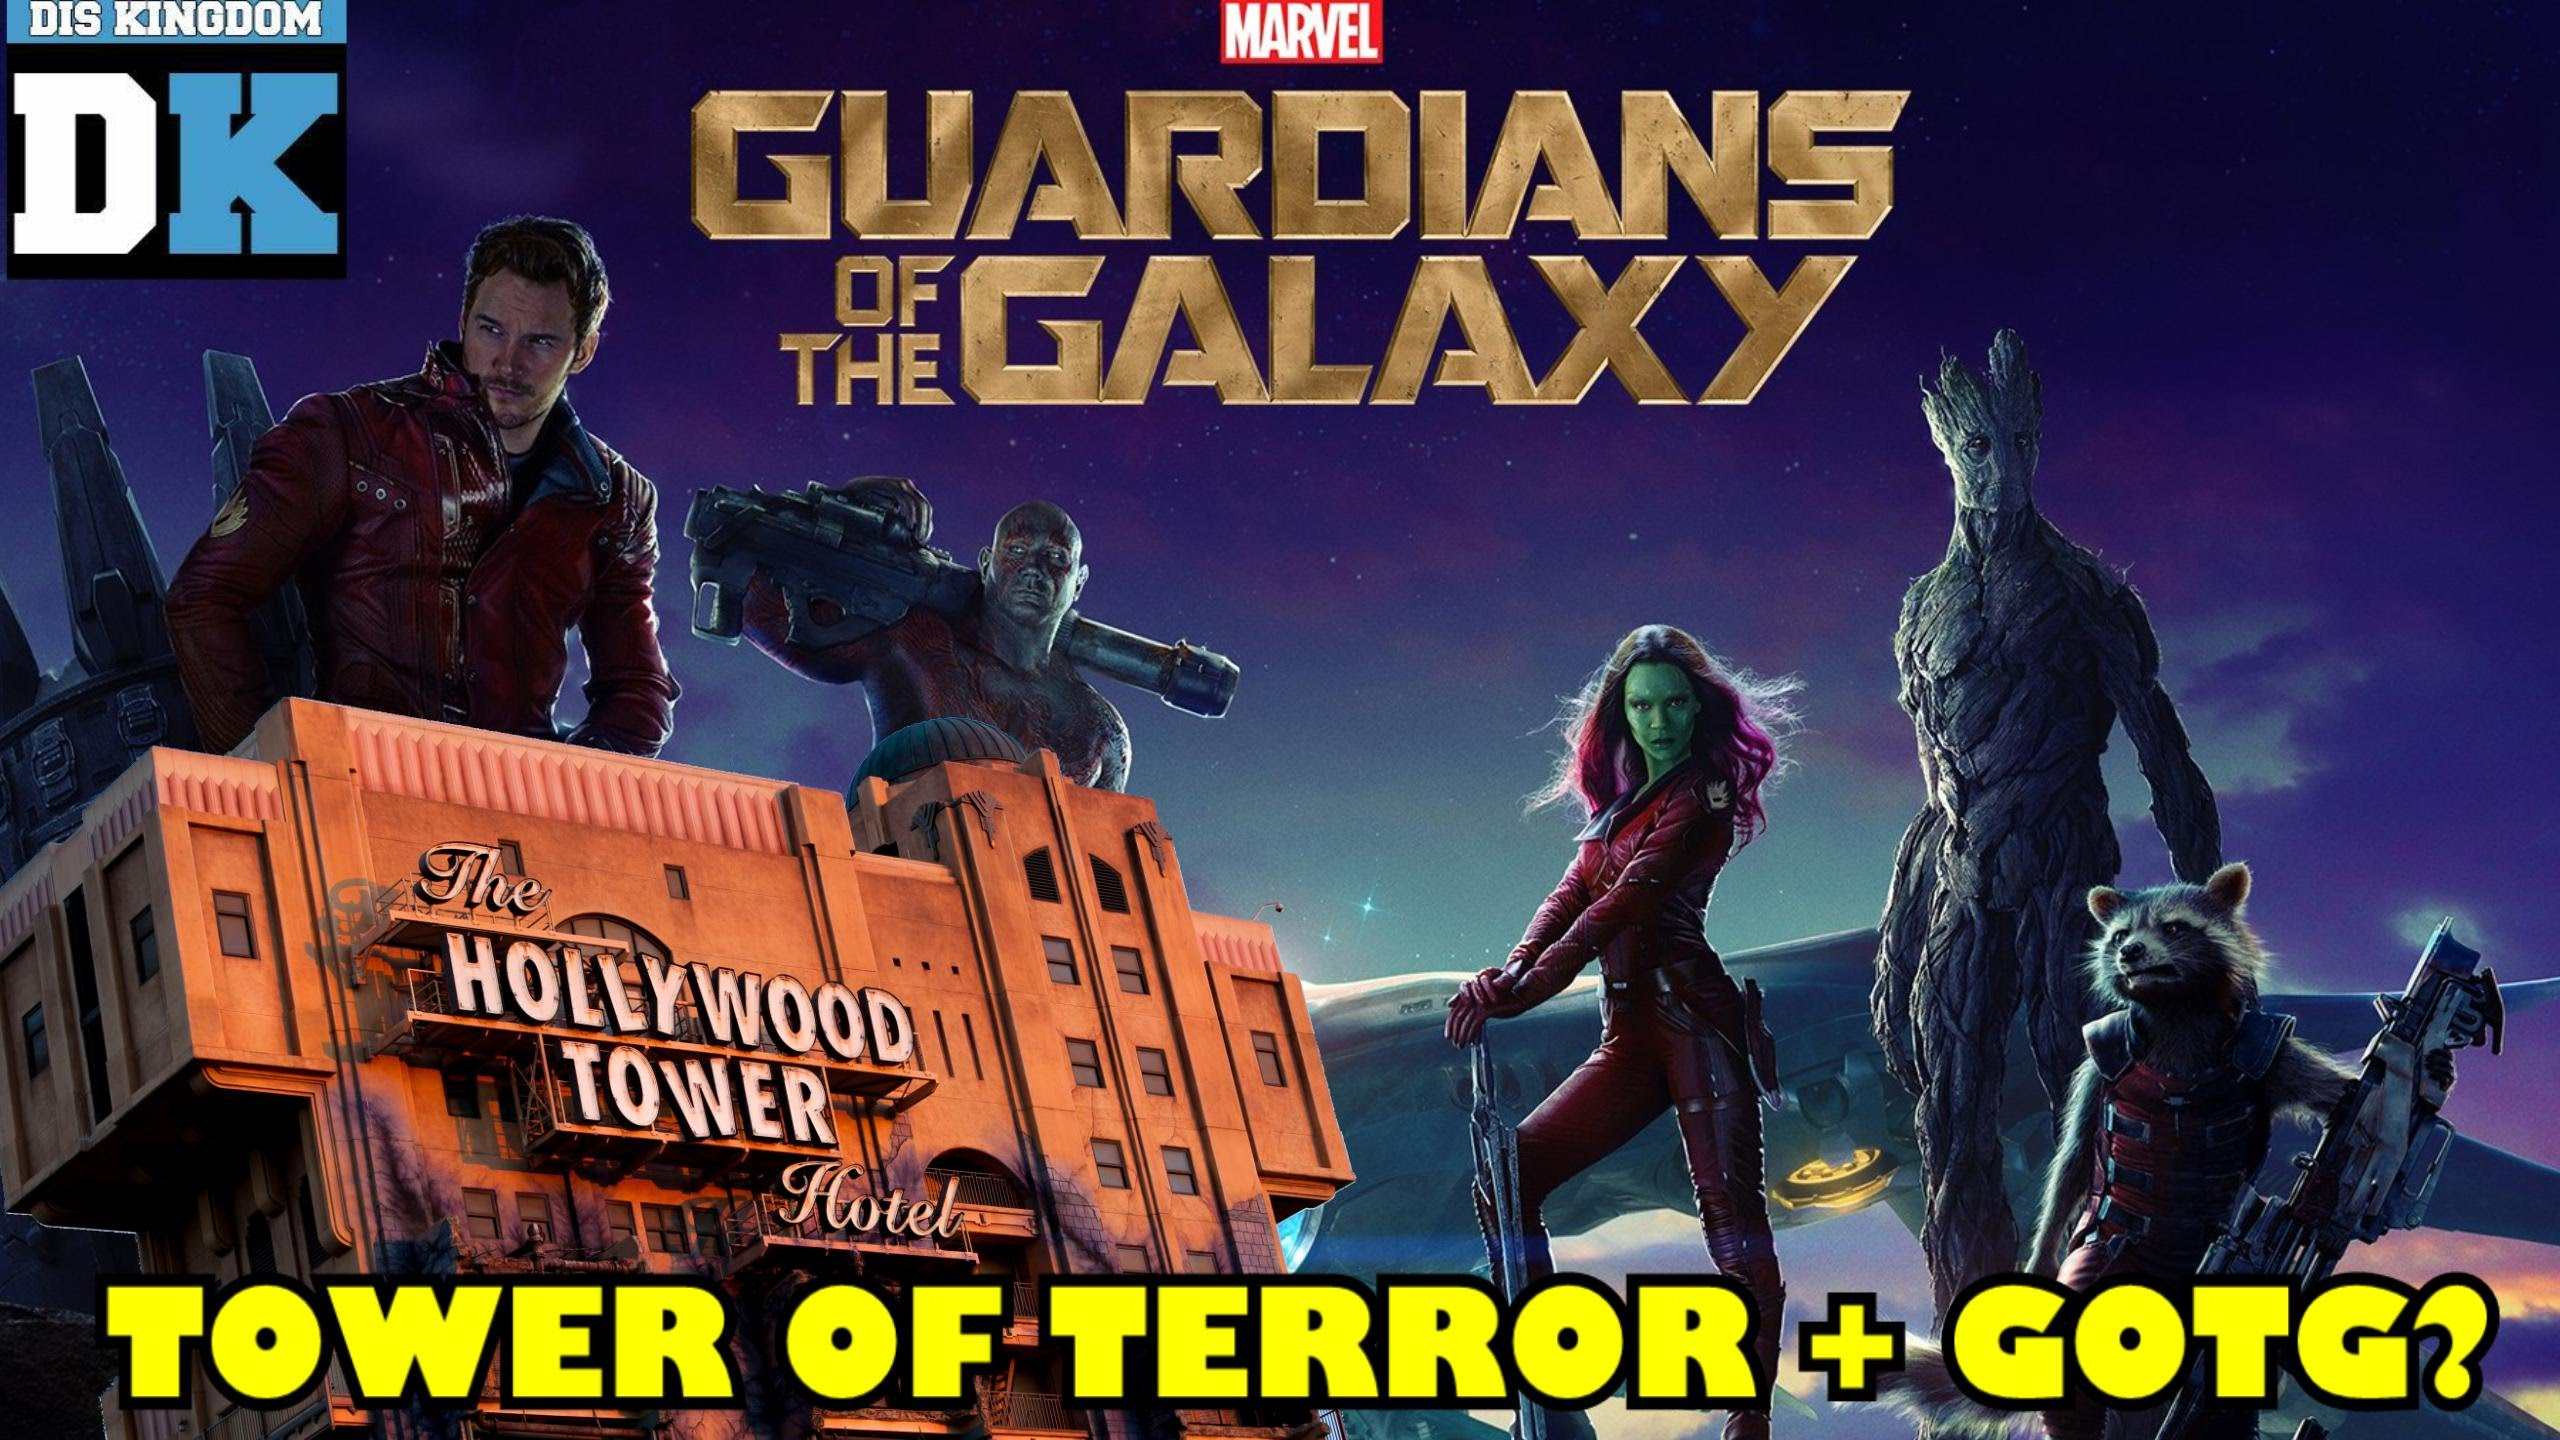 Is Disneyland's Tower Of Terror Getting A Marvel Guardians Of The Galaxy Makeover? – VIDEO